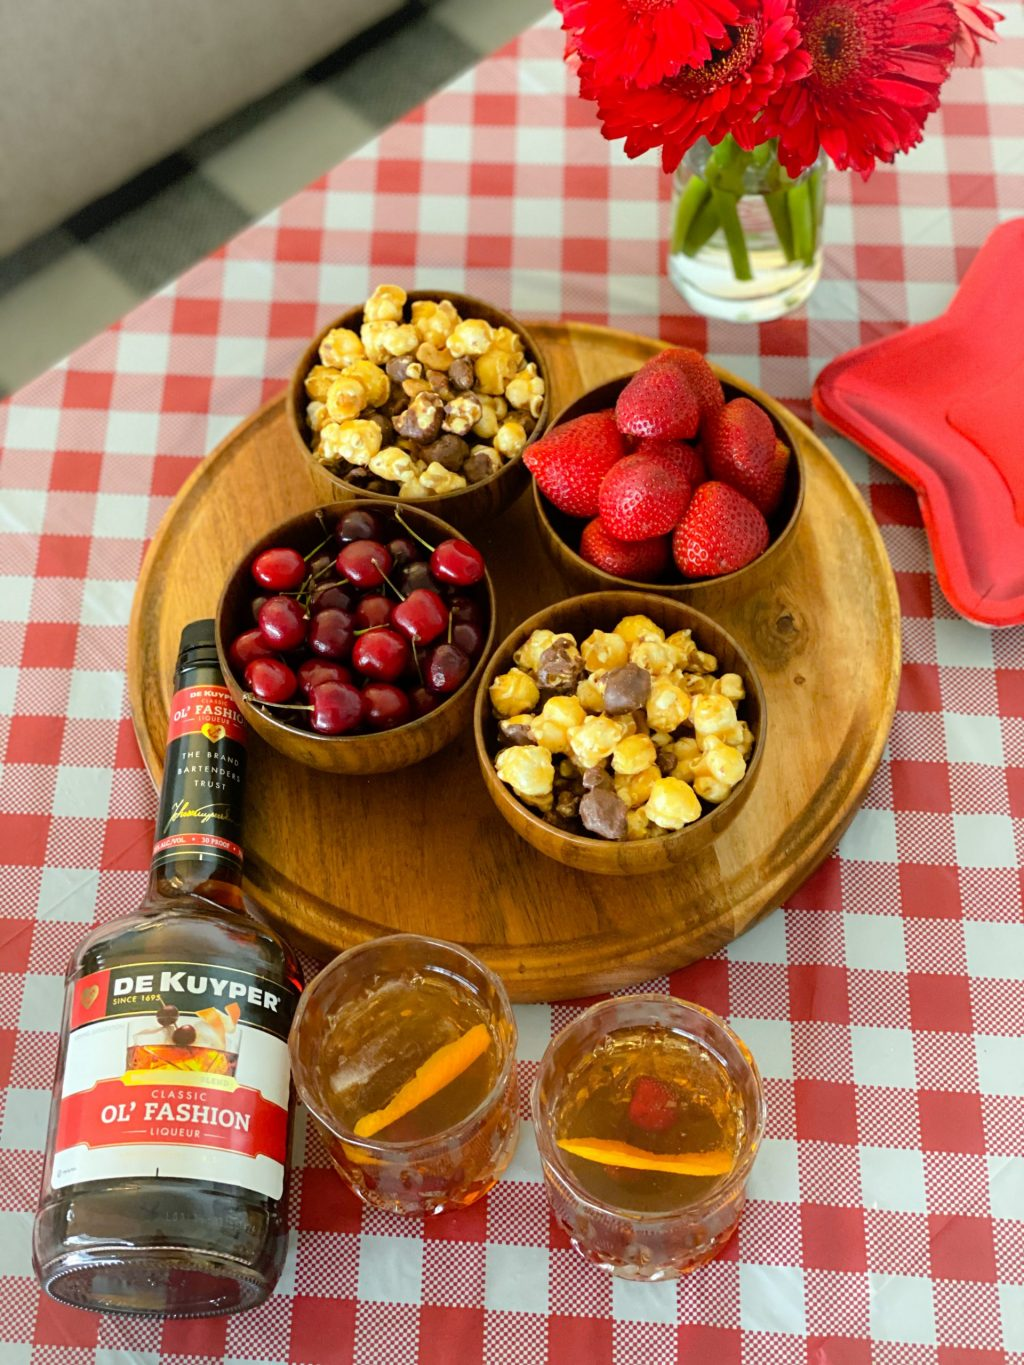 old fashioned liqueur and drinks in glasses on top of red and white checked tablecloth next to wooden tray topped with wooden bowls filled with strawberries, cherries and popcorn